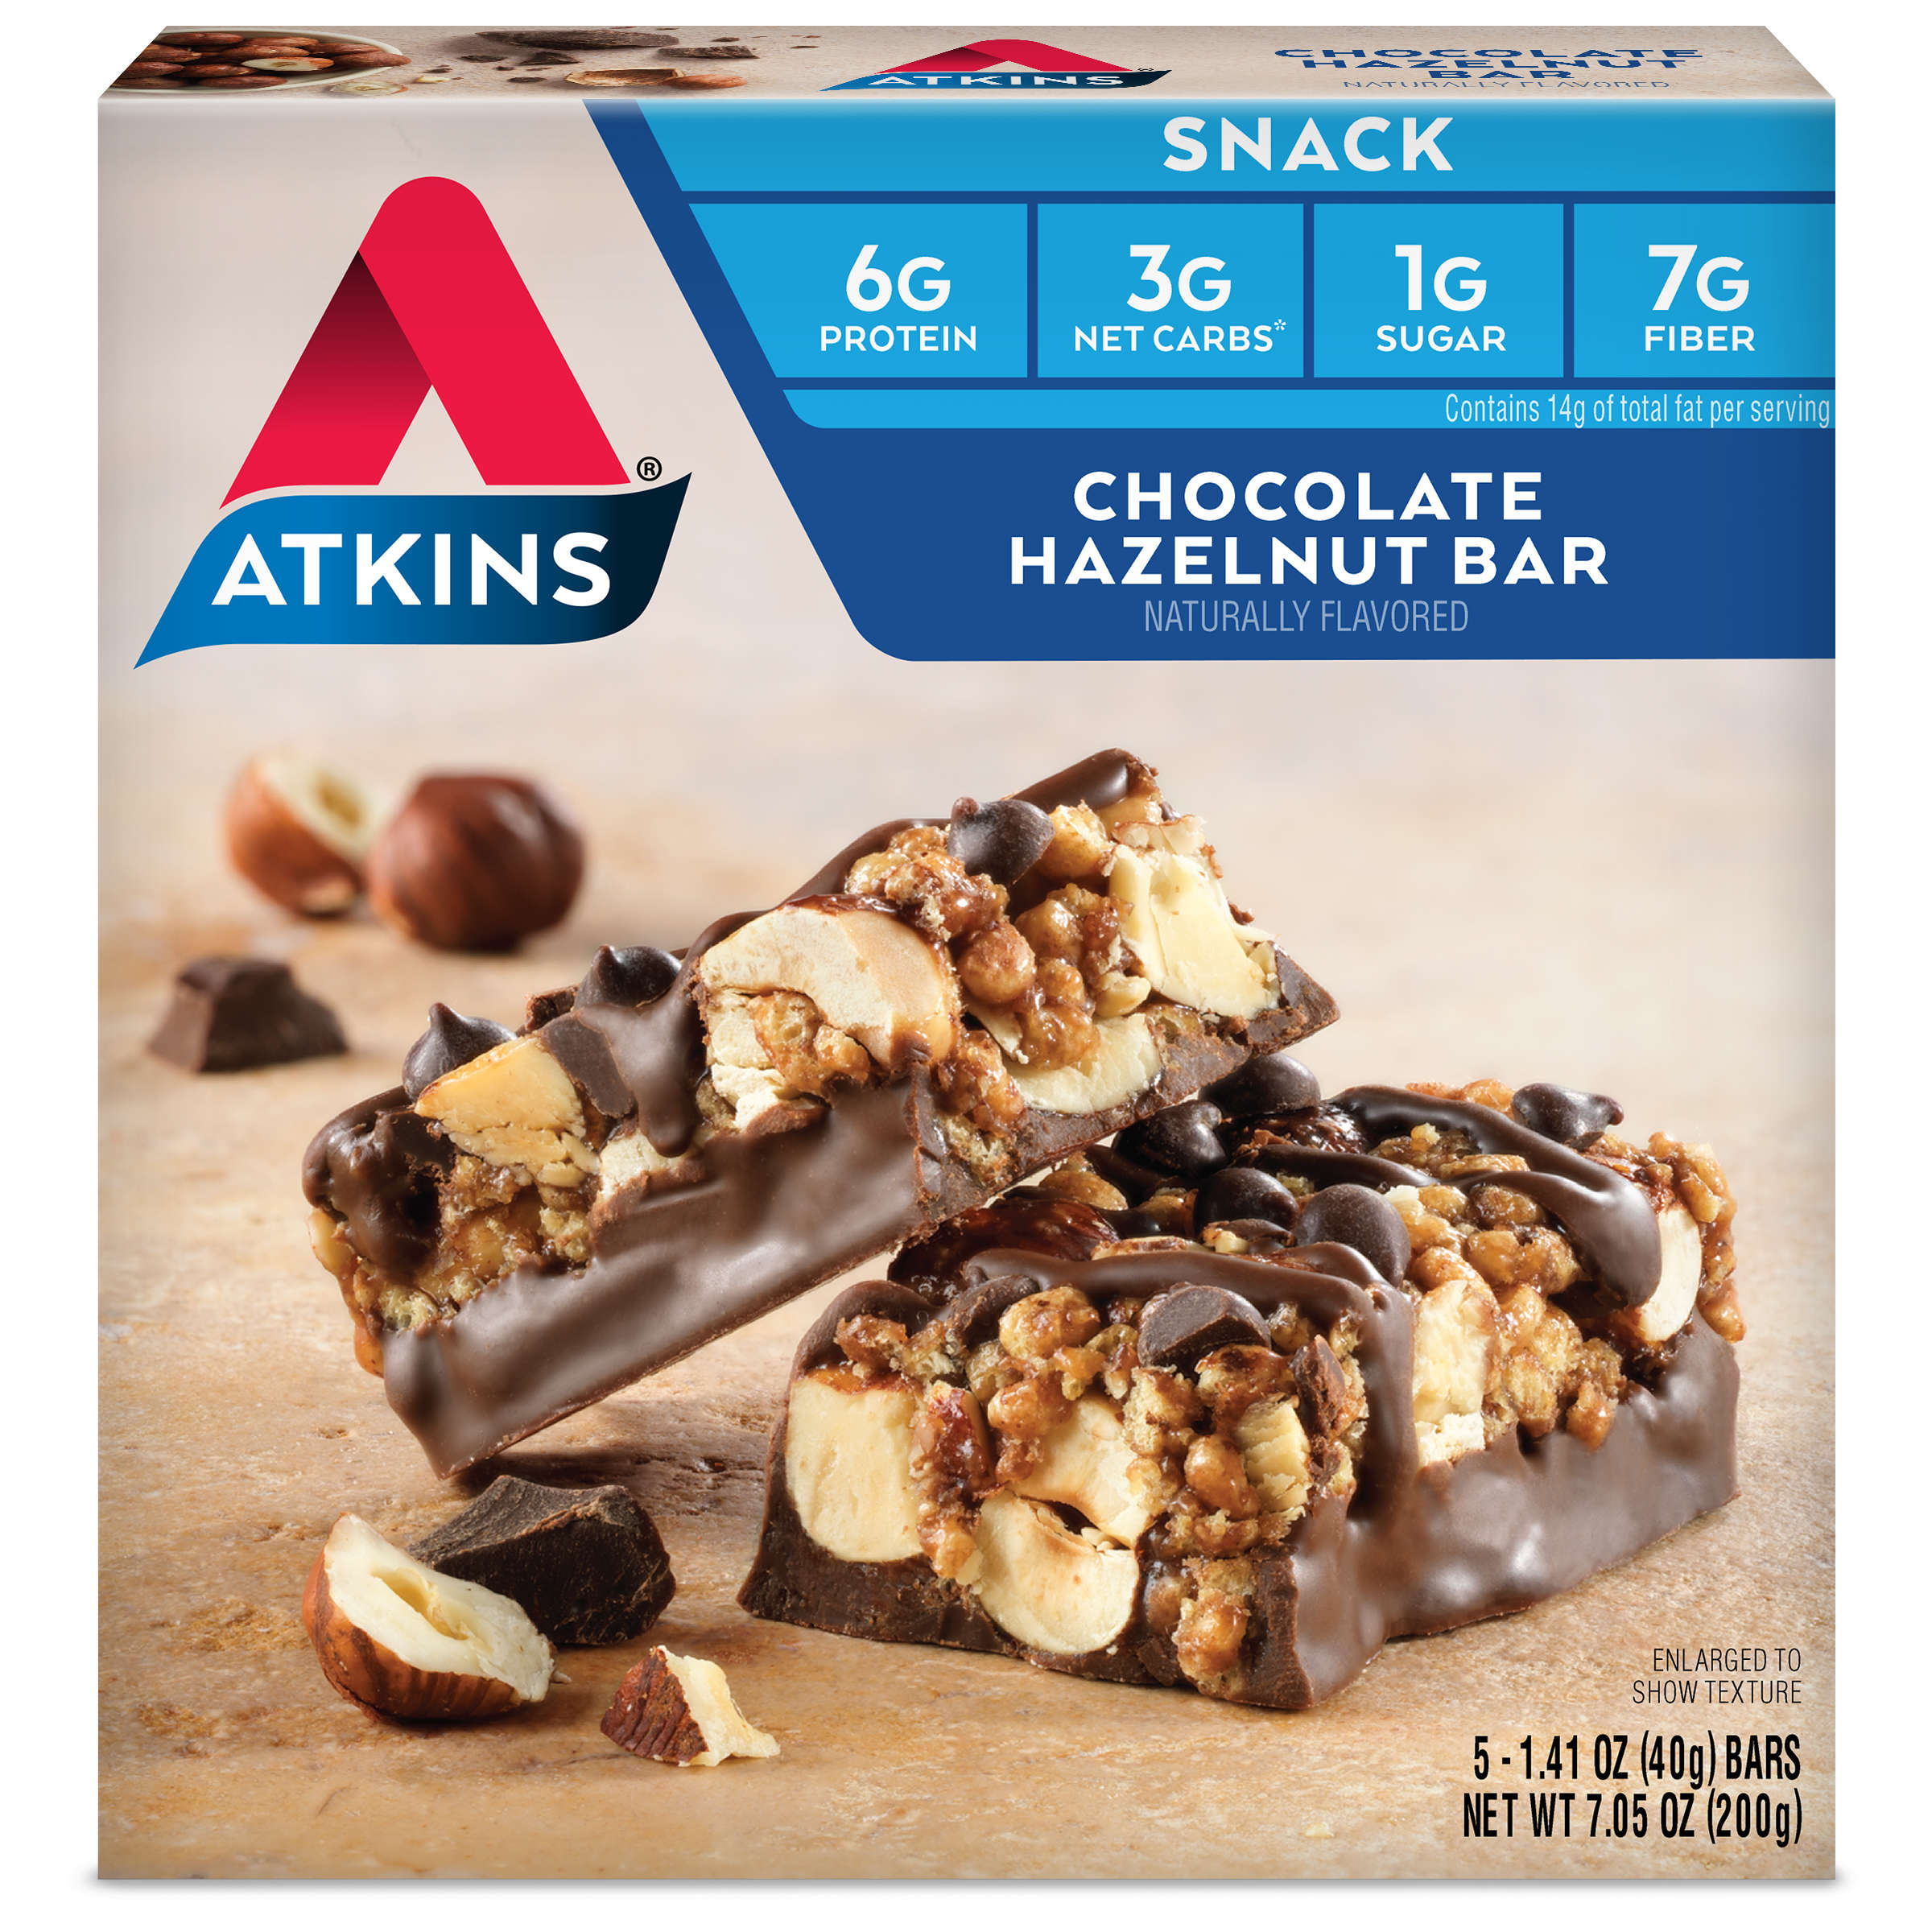 Atkins Chocolate Hazelnut Bar, 1.4oz, 5-pack (Snack)